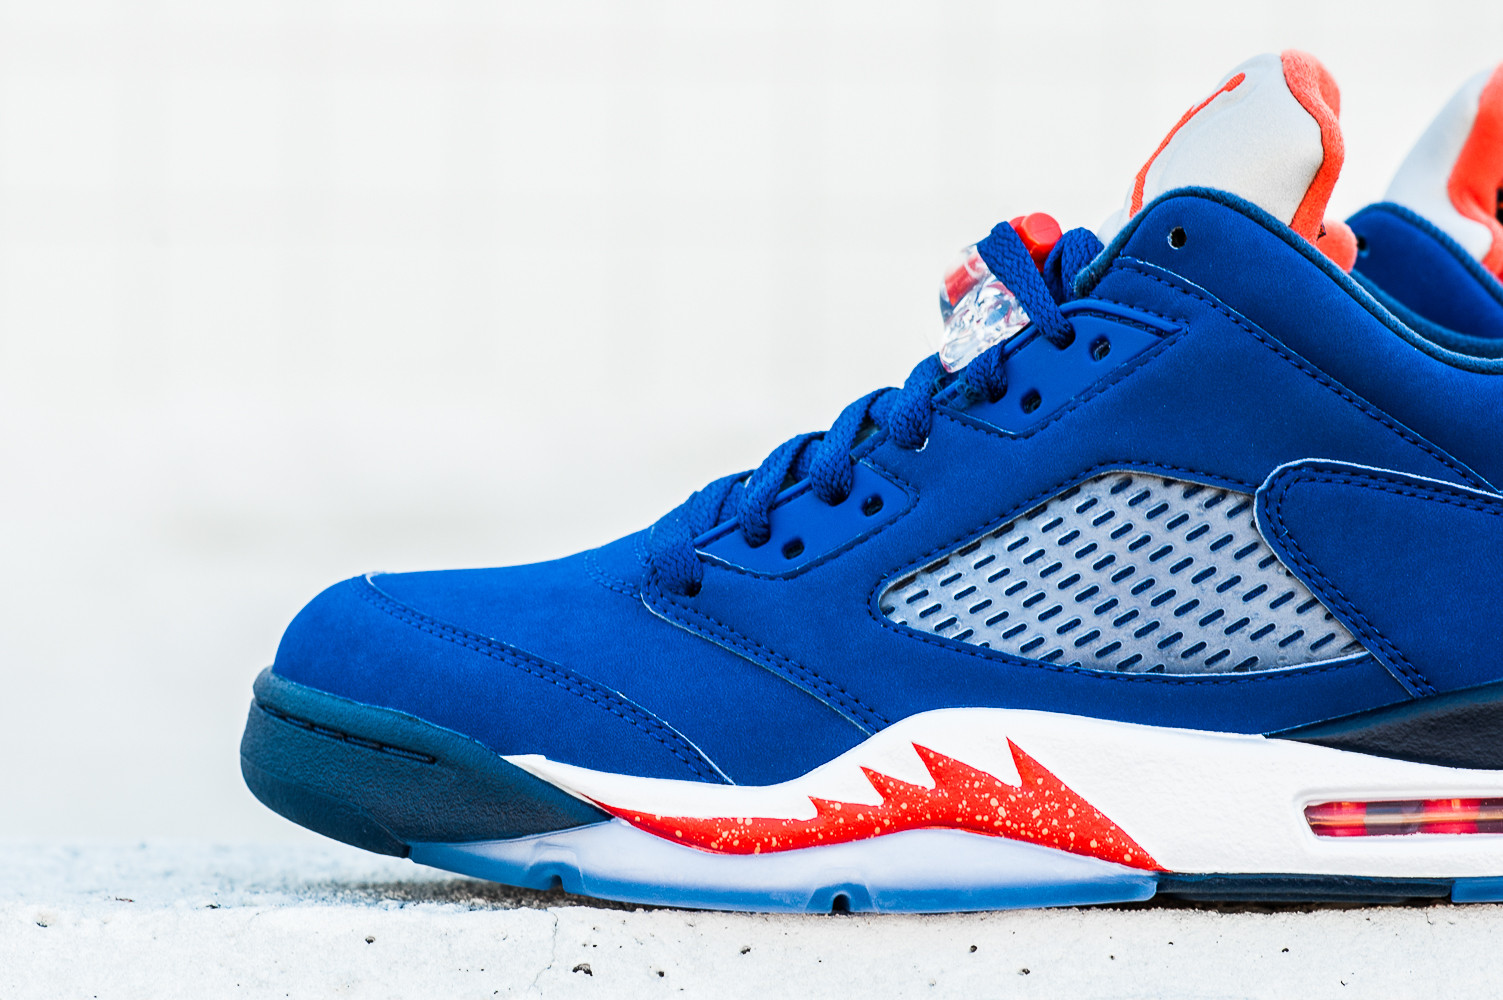 Air jordan 5 low knicks releases on an historic mj for Jardin 5